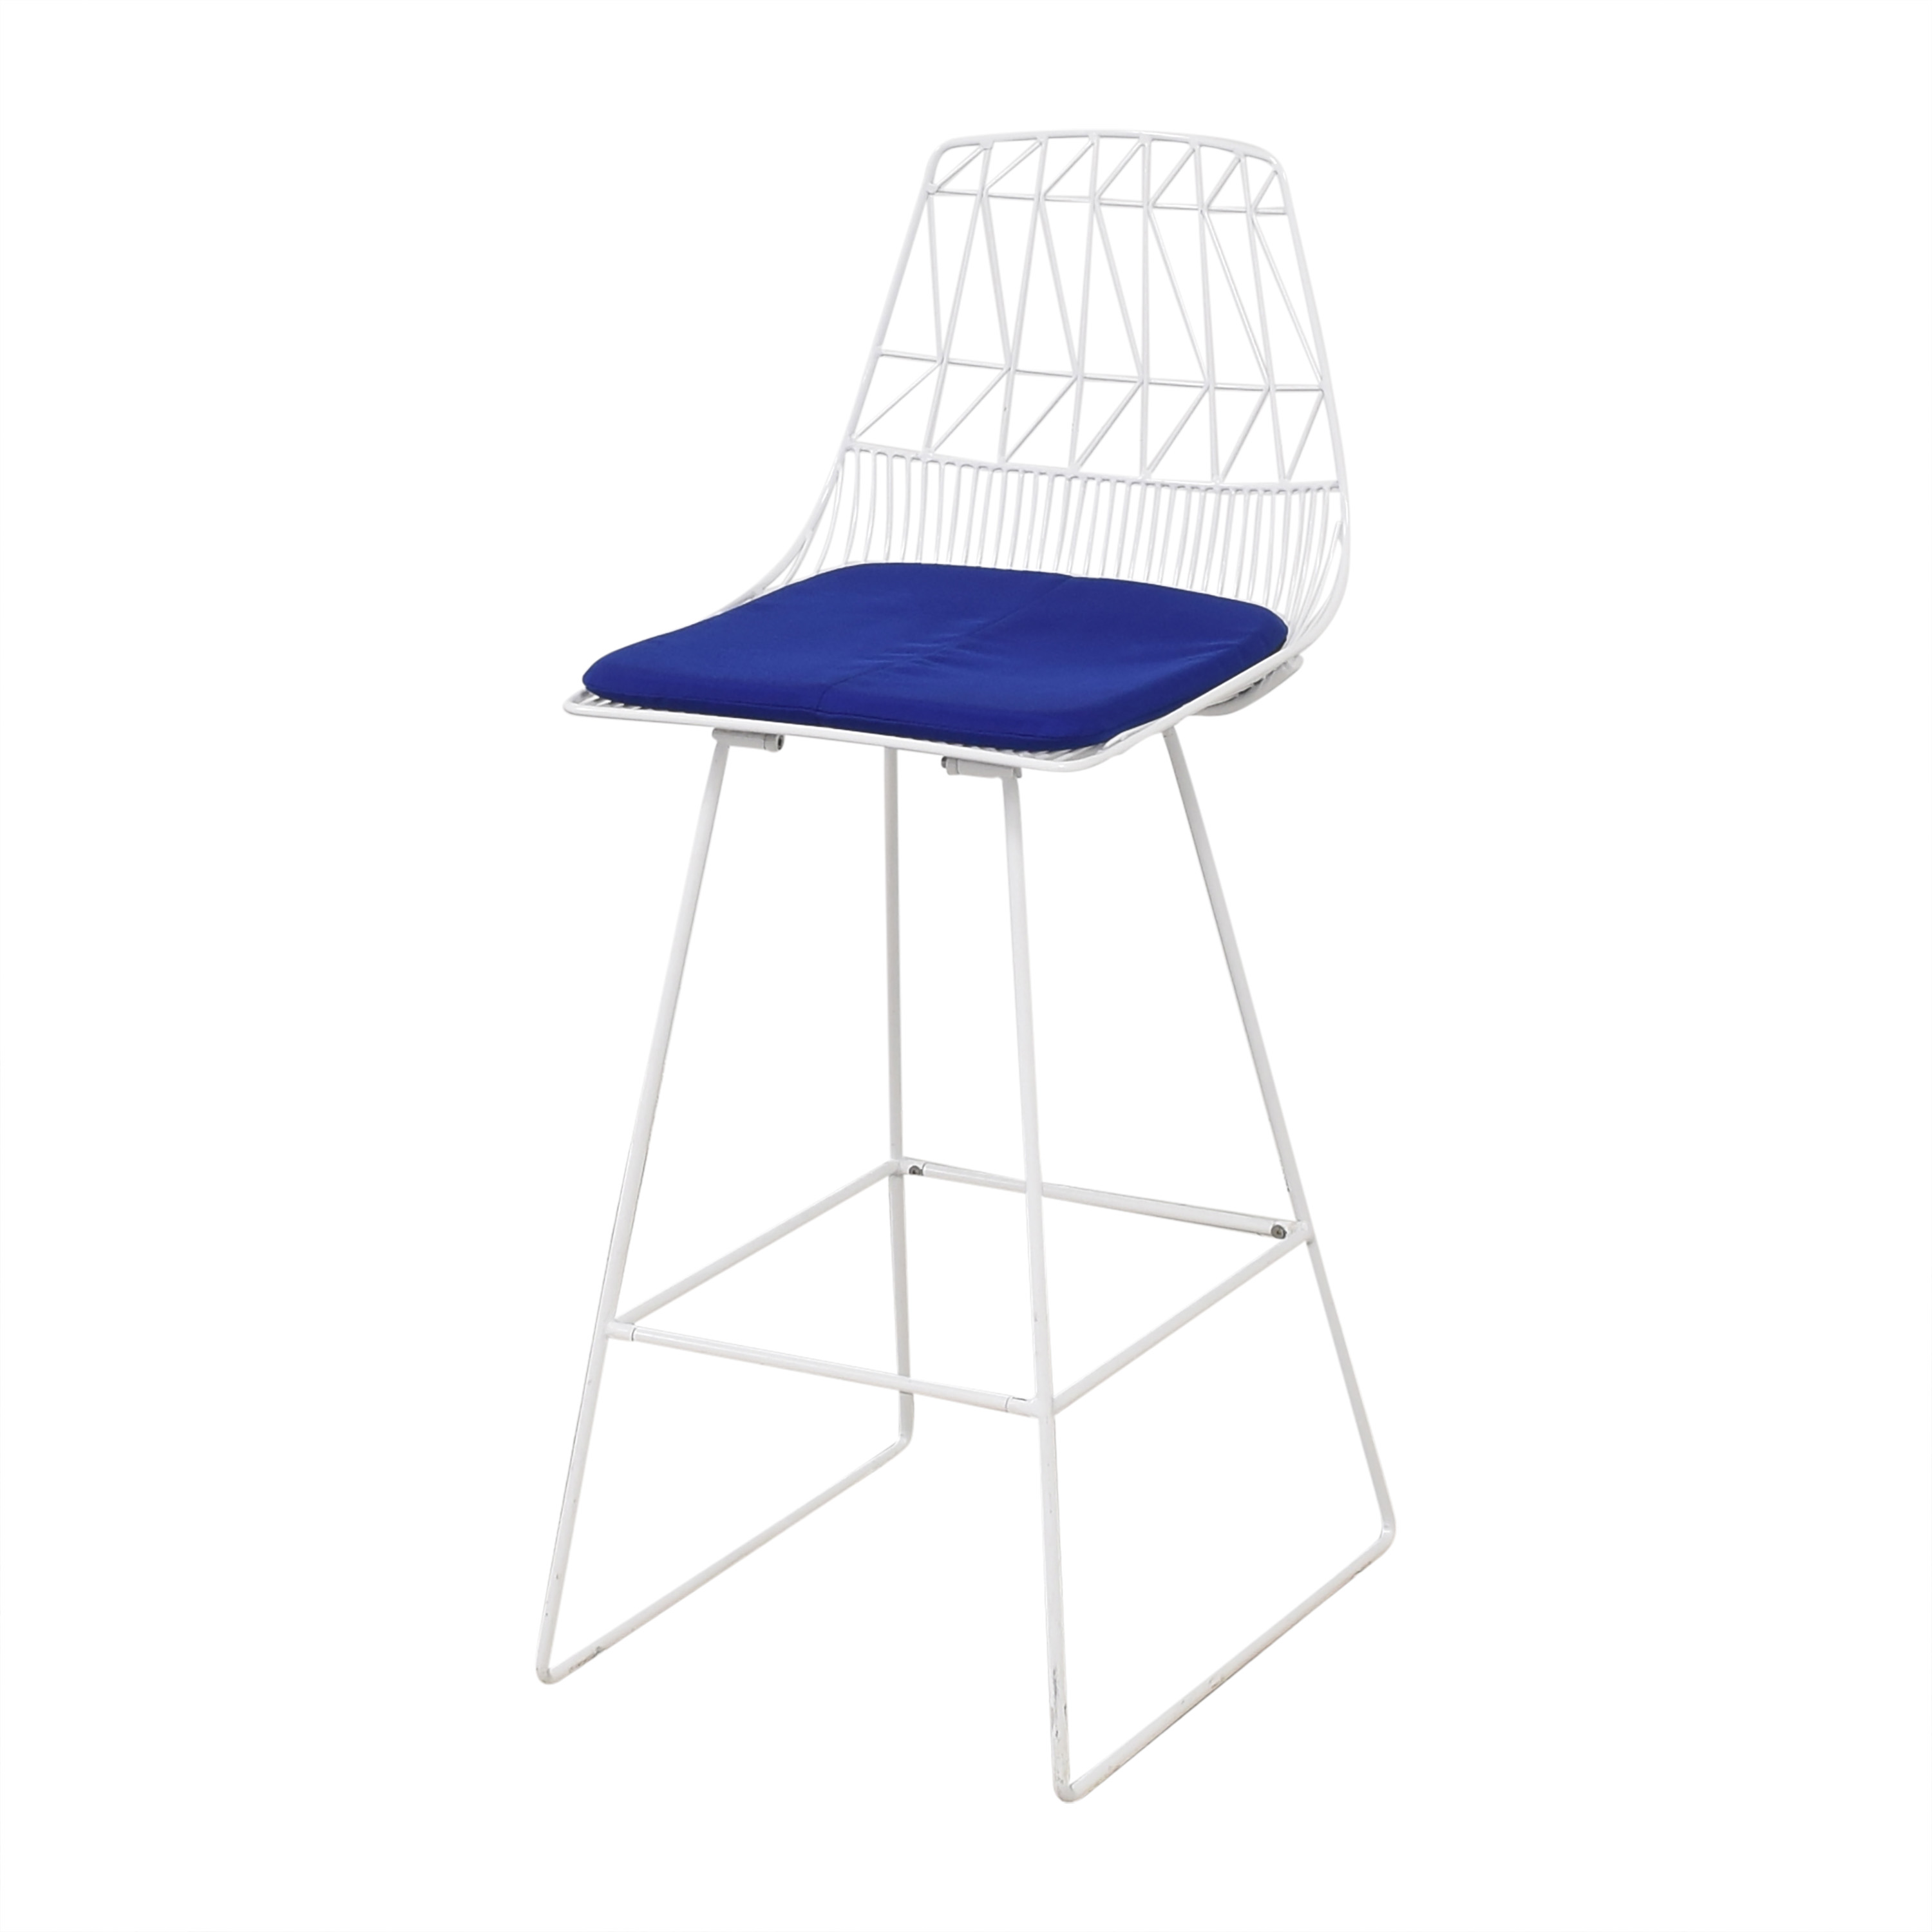 Bend Good Lucy Bar Stools with Cushions / Stools